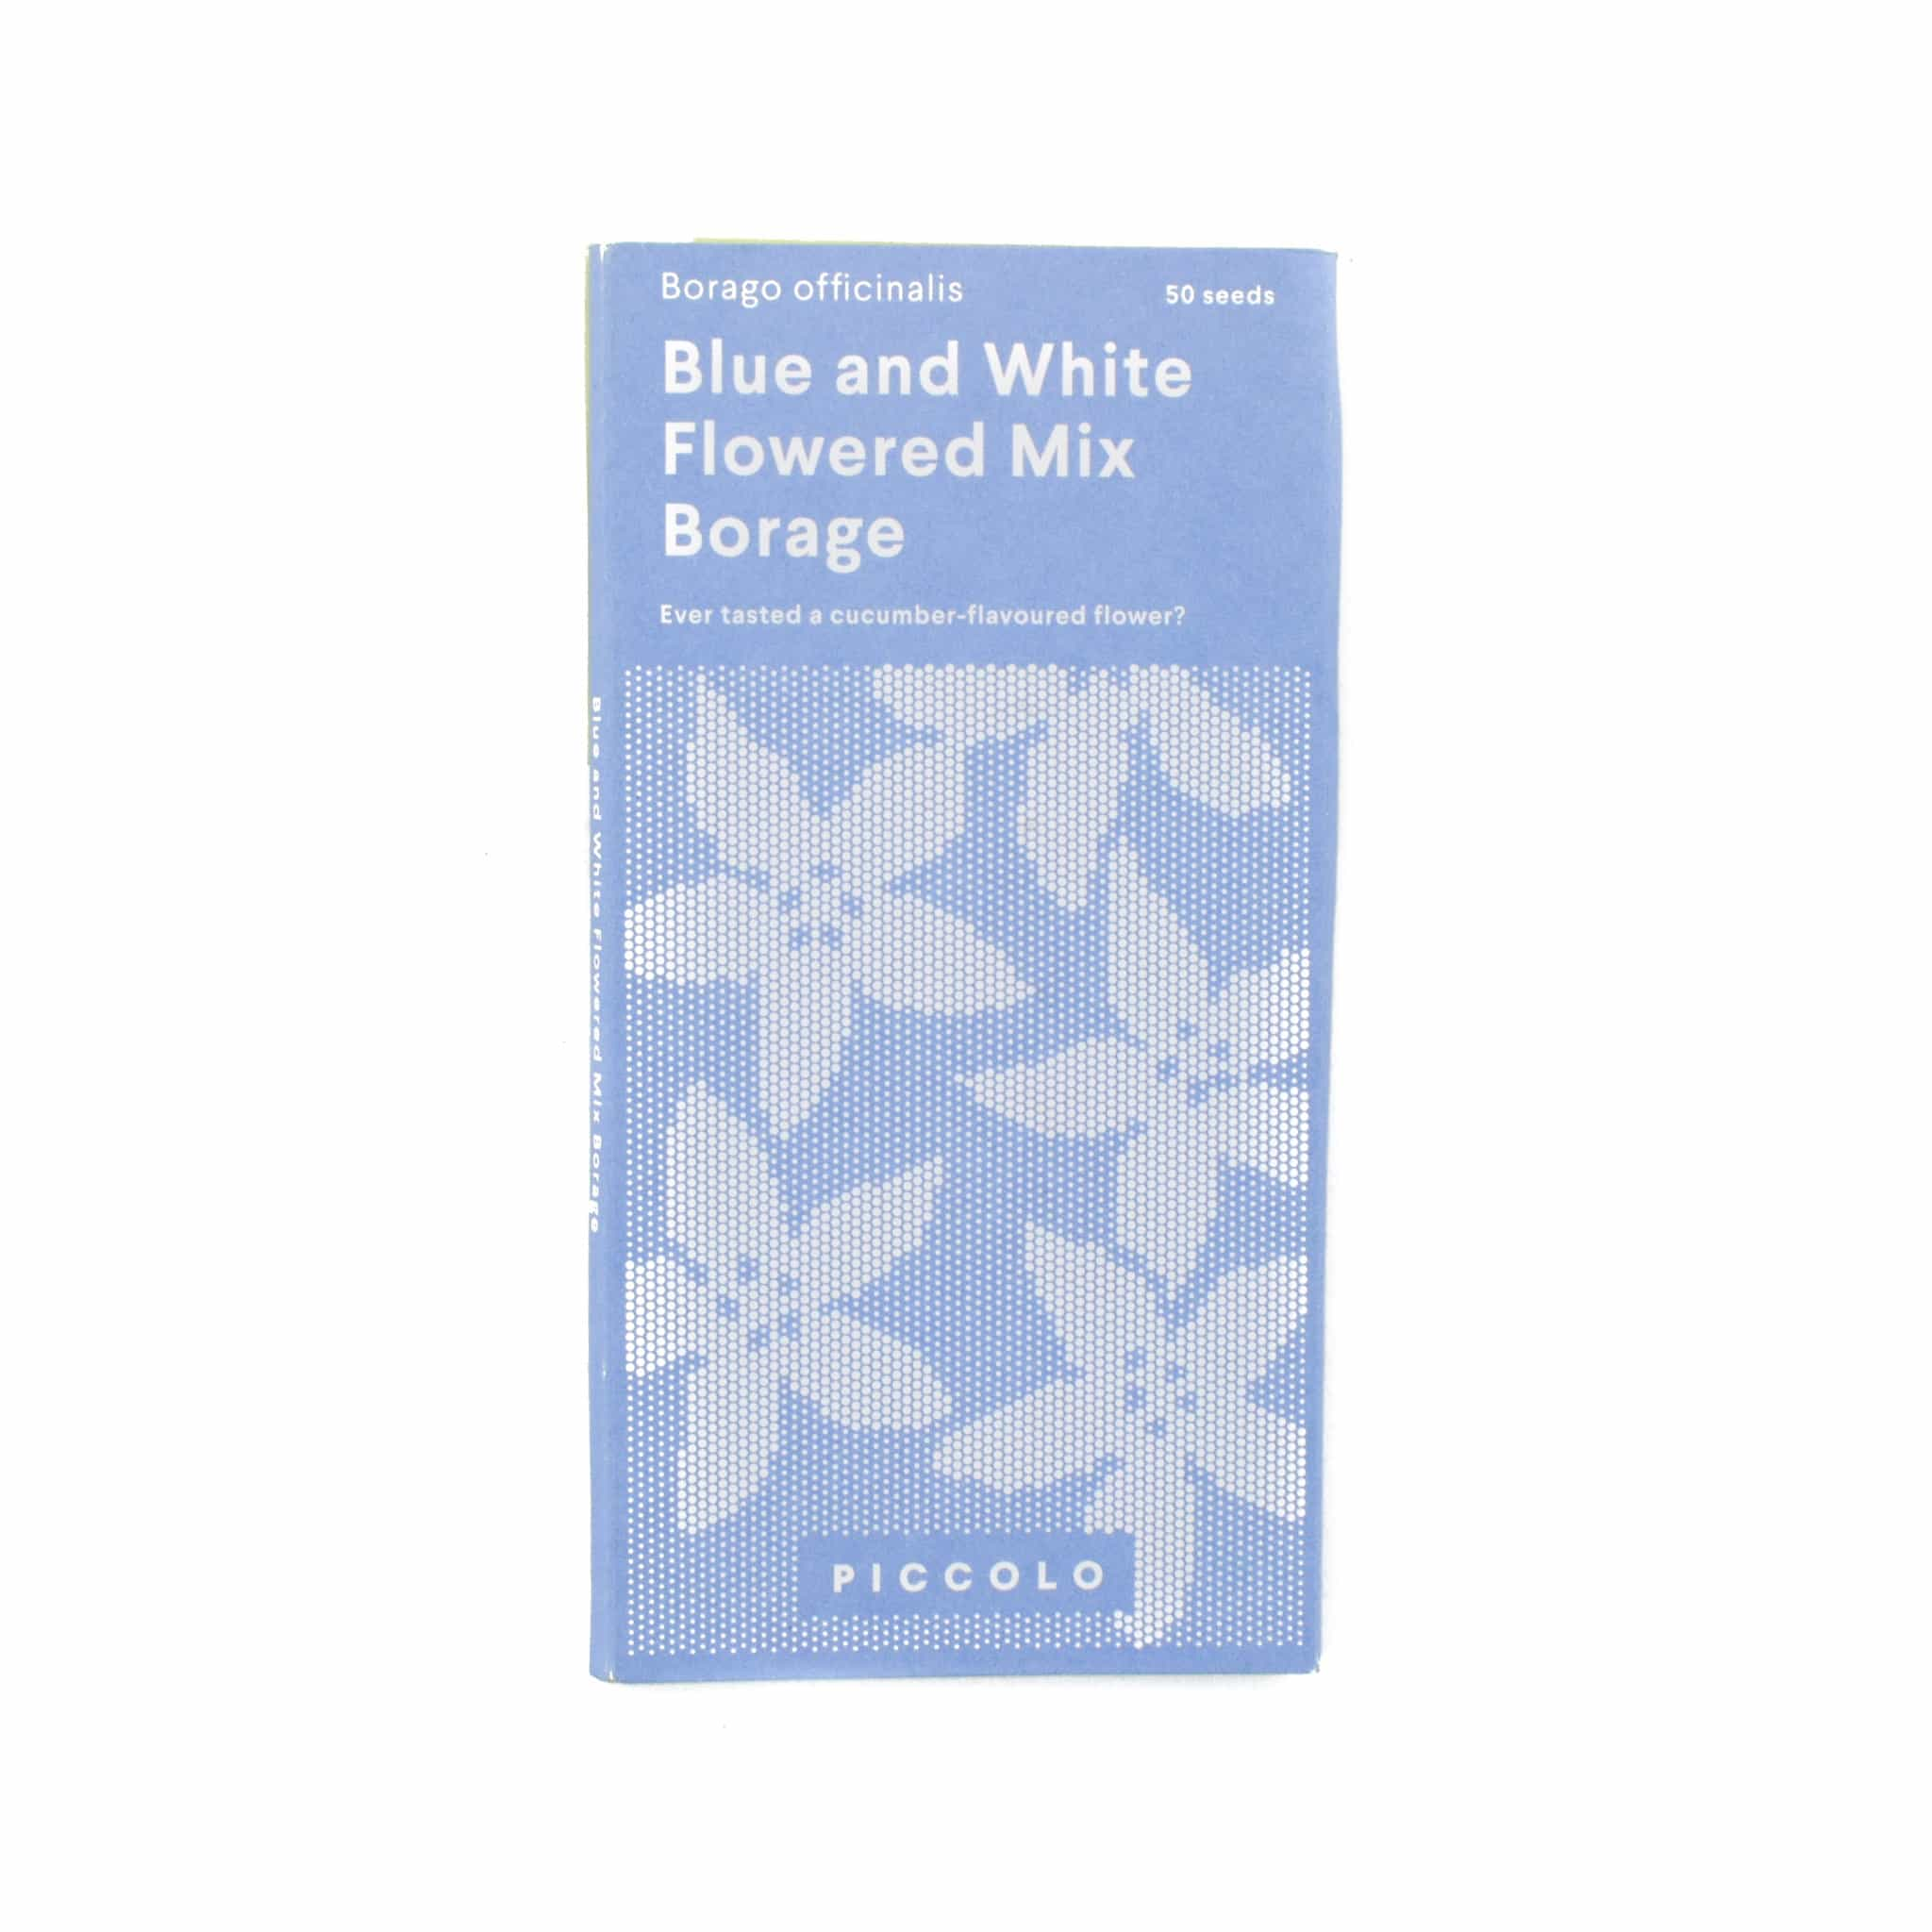 Piccolo White and Blue Mixed Borage Edible Flower Seeds